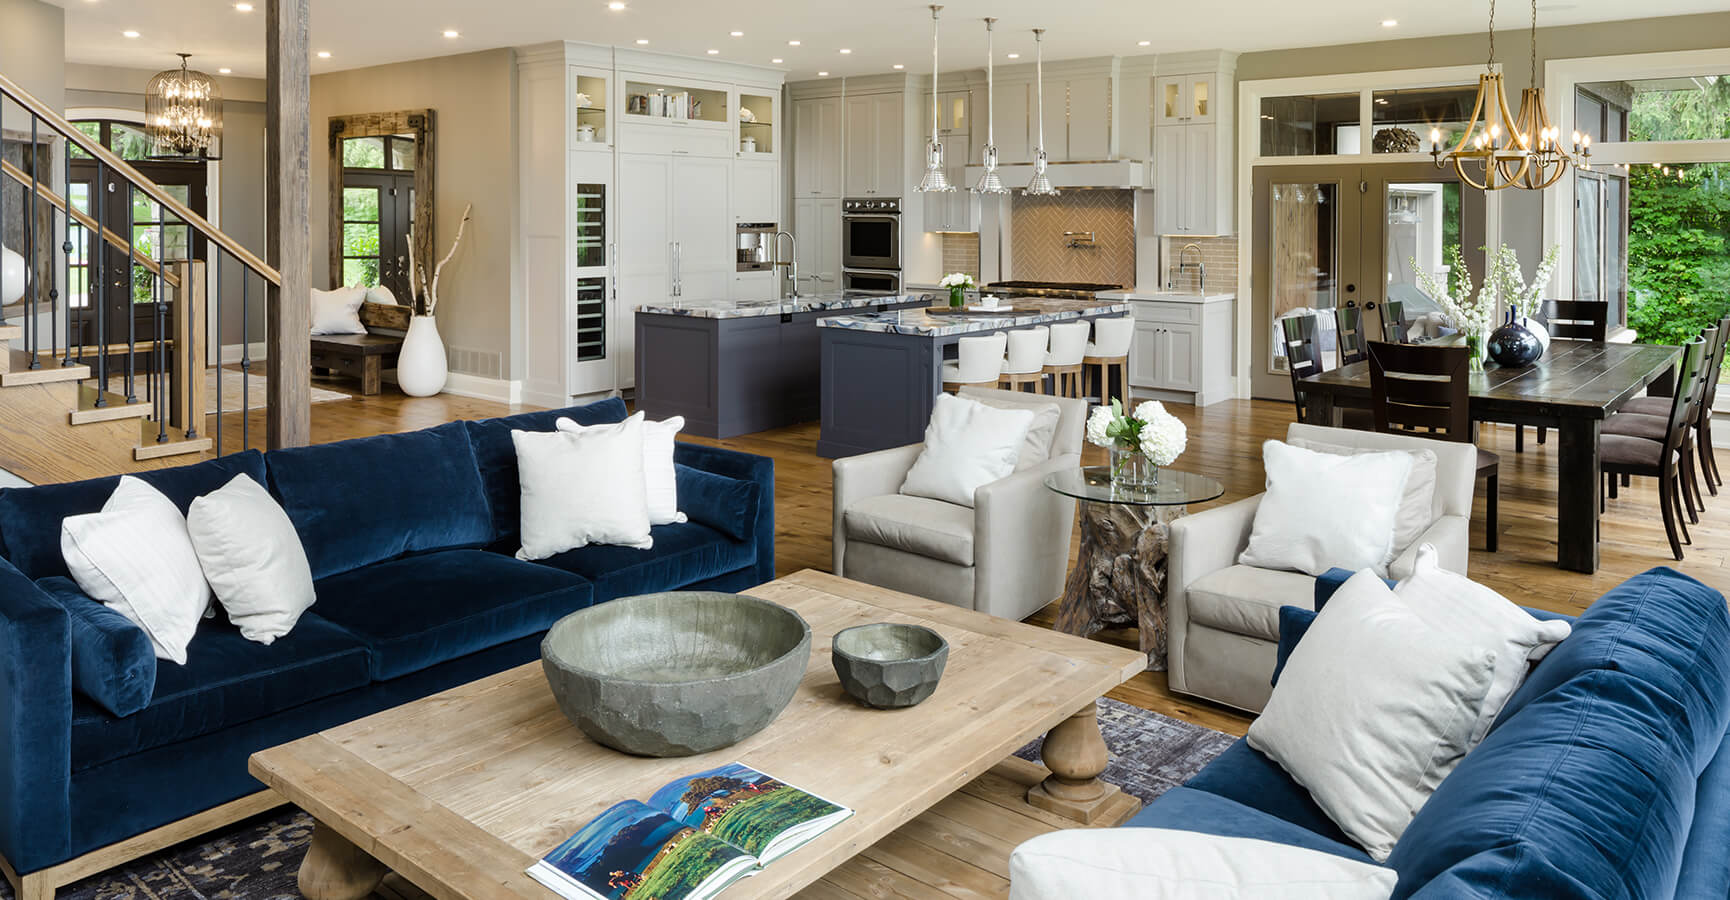 Lakeview Living Room With Kitchen and Dining Table